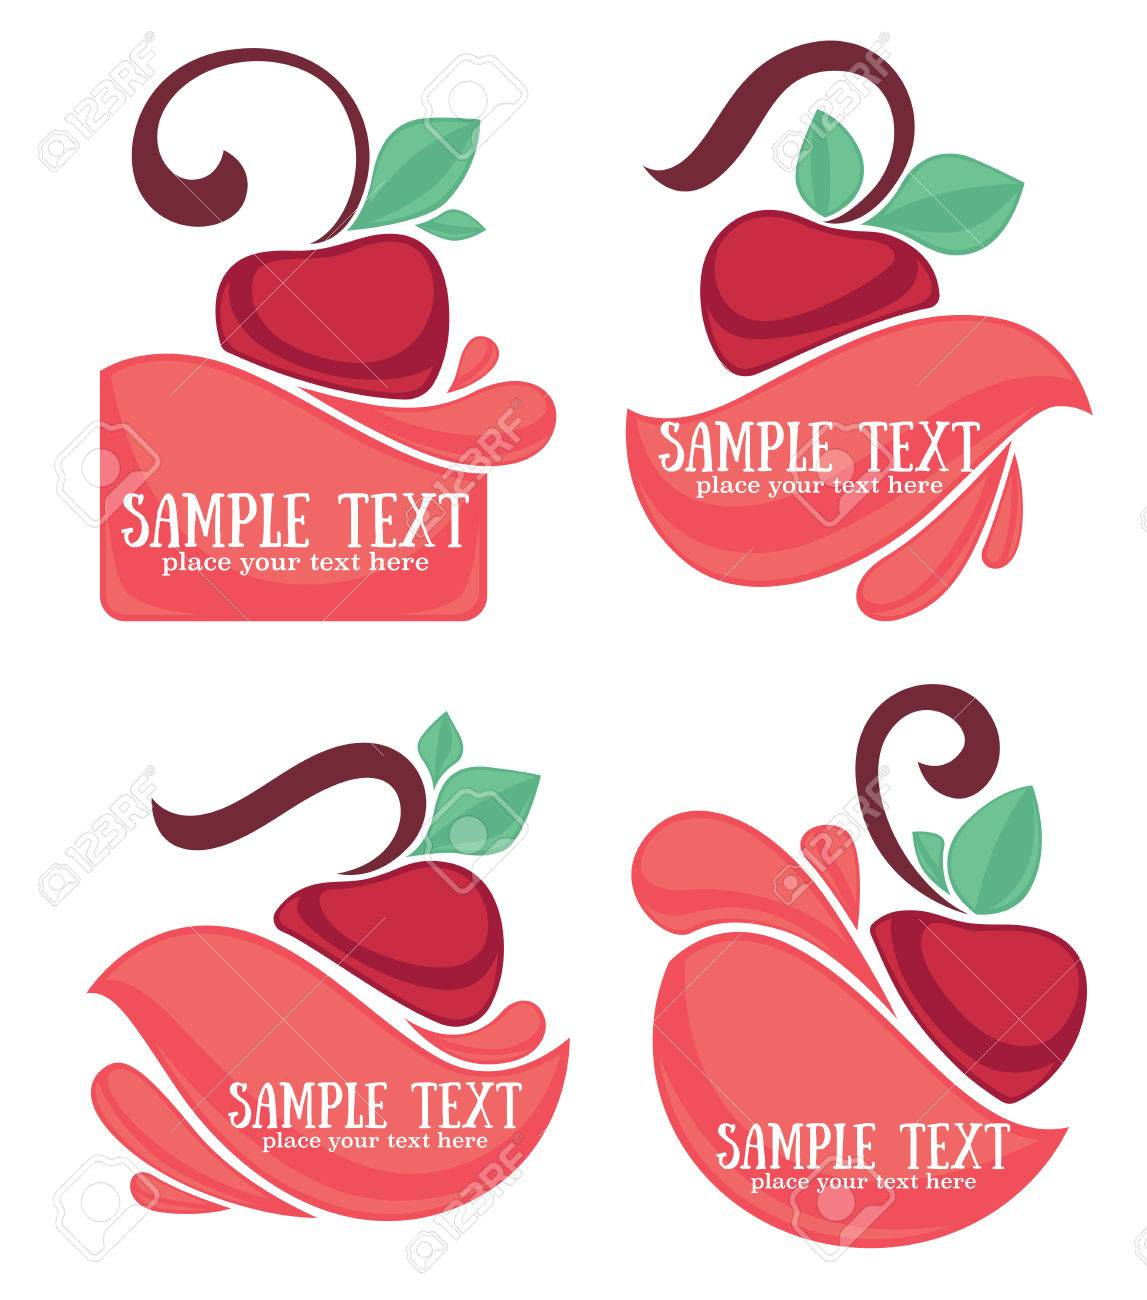 ector collection of juice stickers and cherry symbols for your